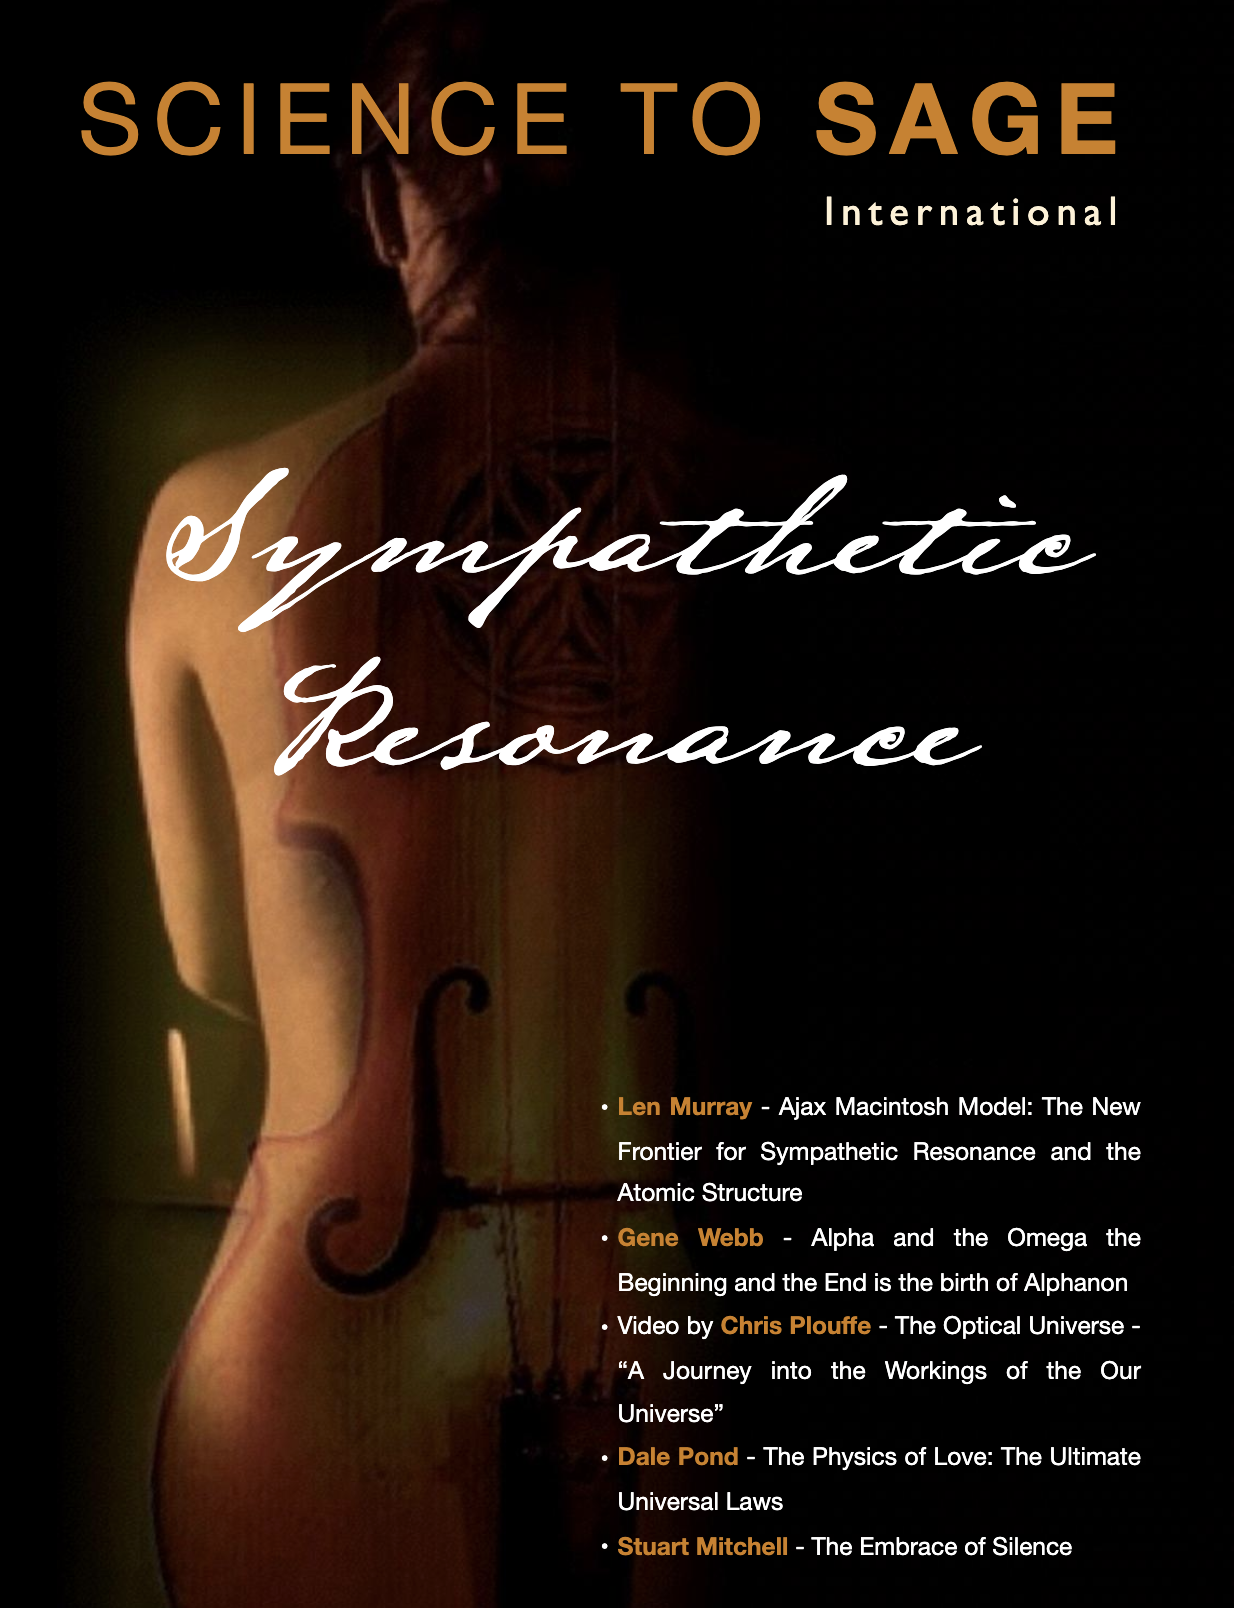 43-SYMPATHETIC RESONANCE